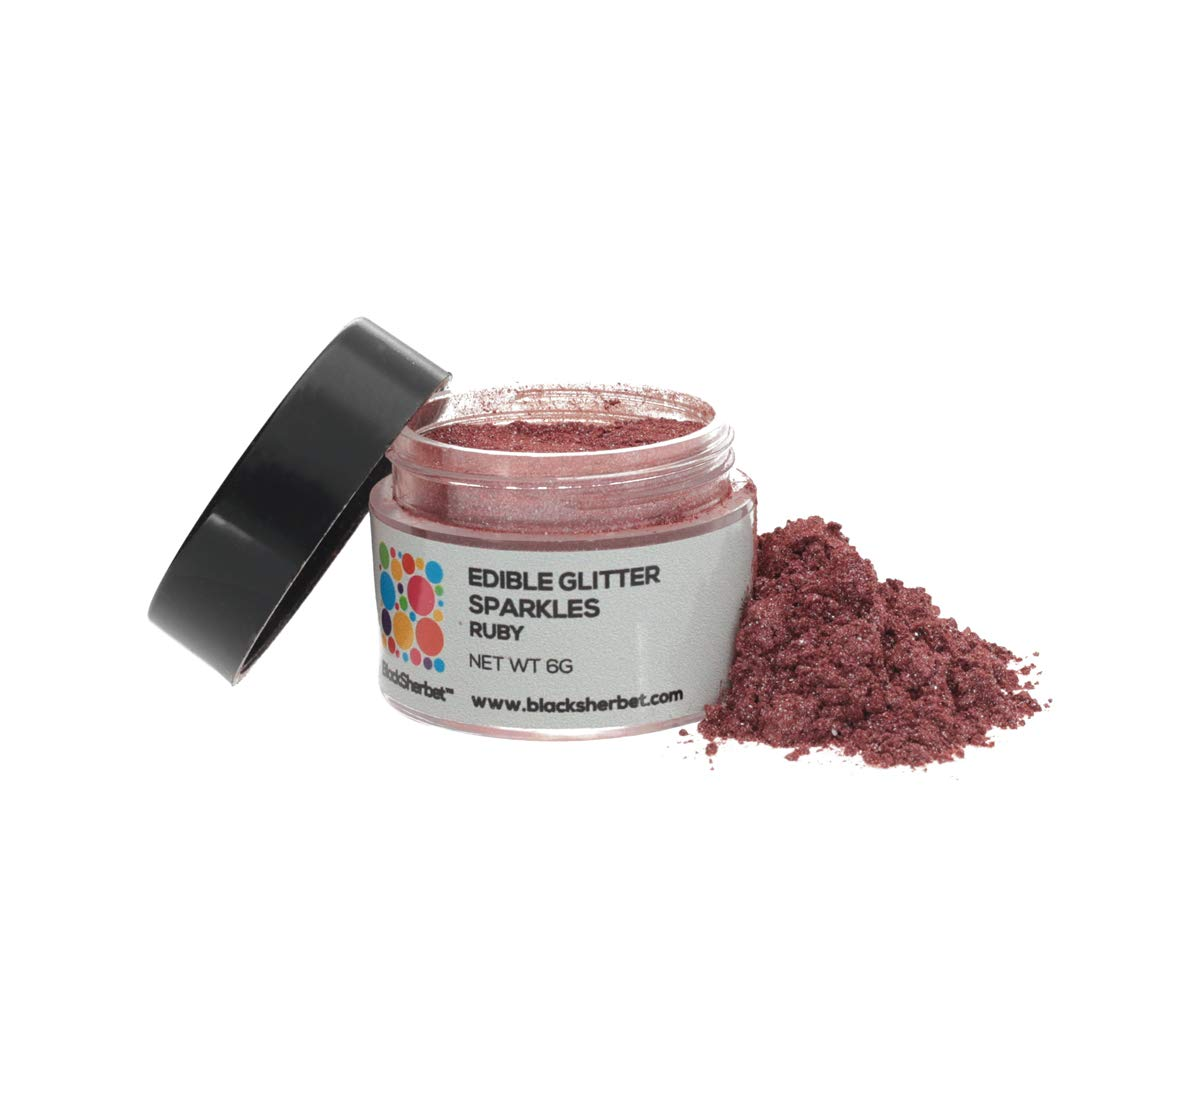 Edible Glitter Sparkles (5 grams) for Drinks, Dessert, Cakes, Cupcakes, Decorating. 100% Edible & Food Grade. (Ruby)